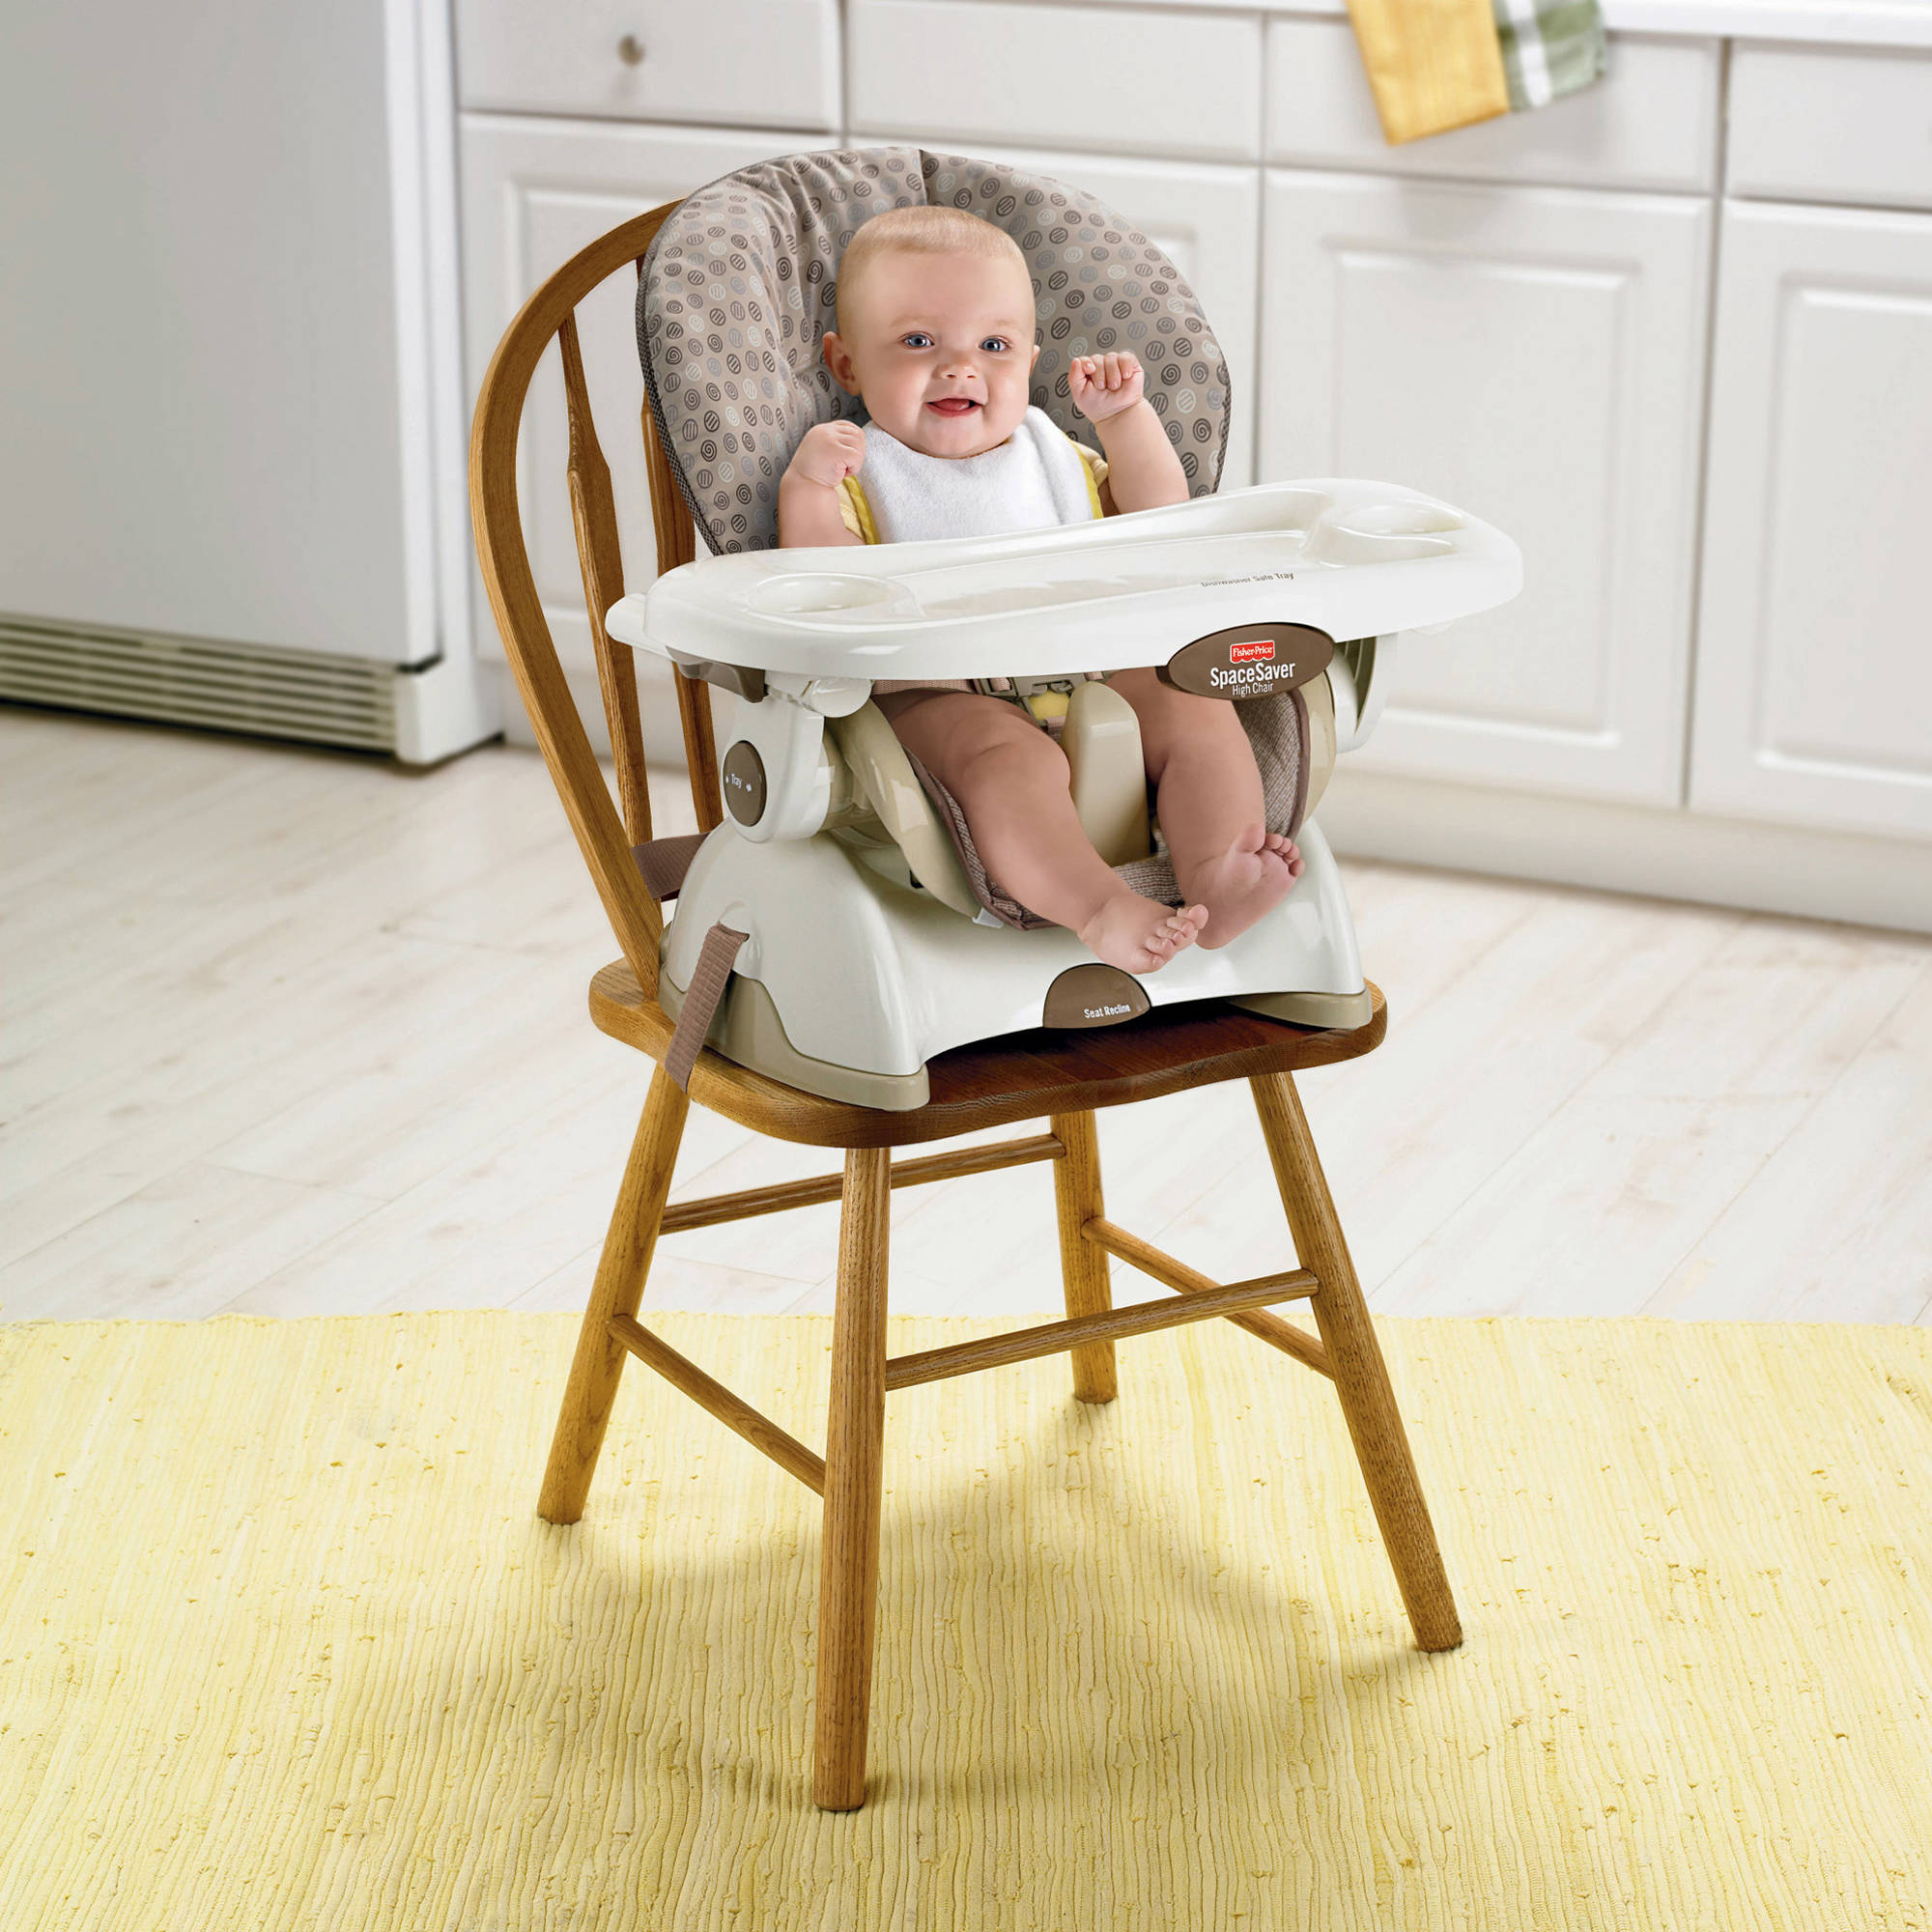 Fisher-Price Space-Saver High Chair, Swirls